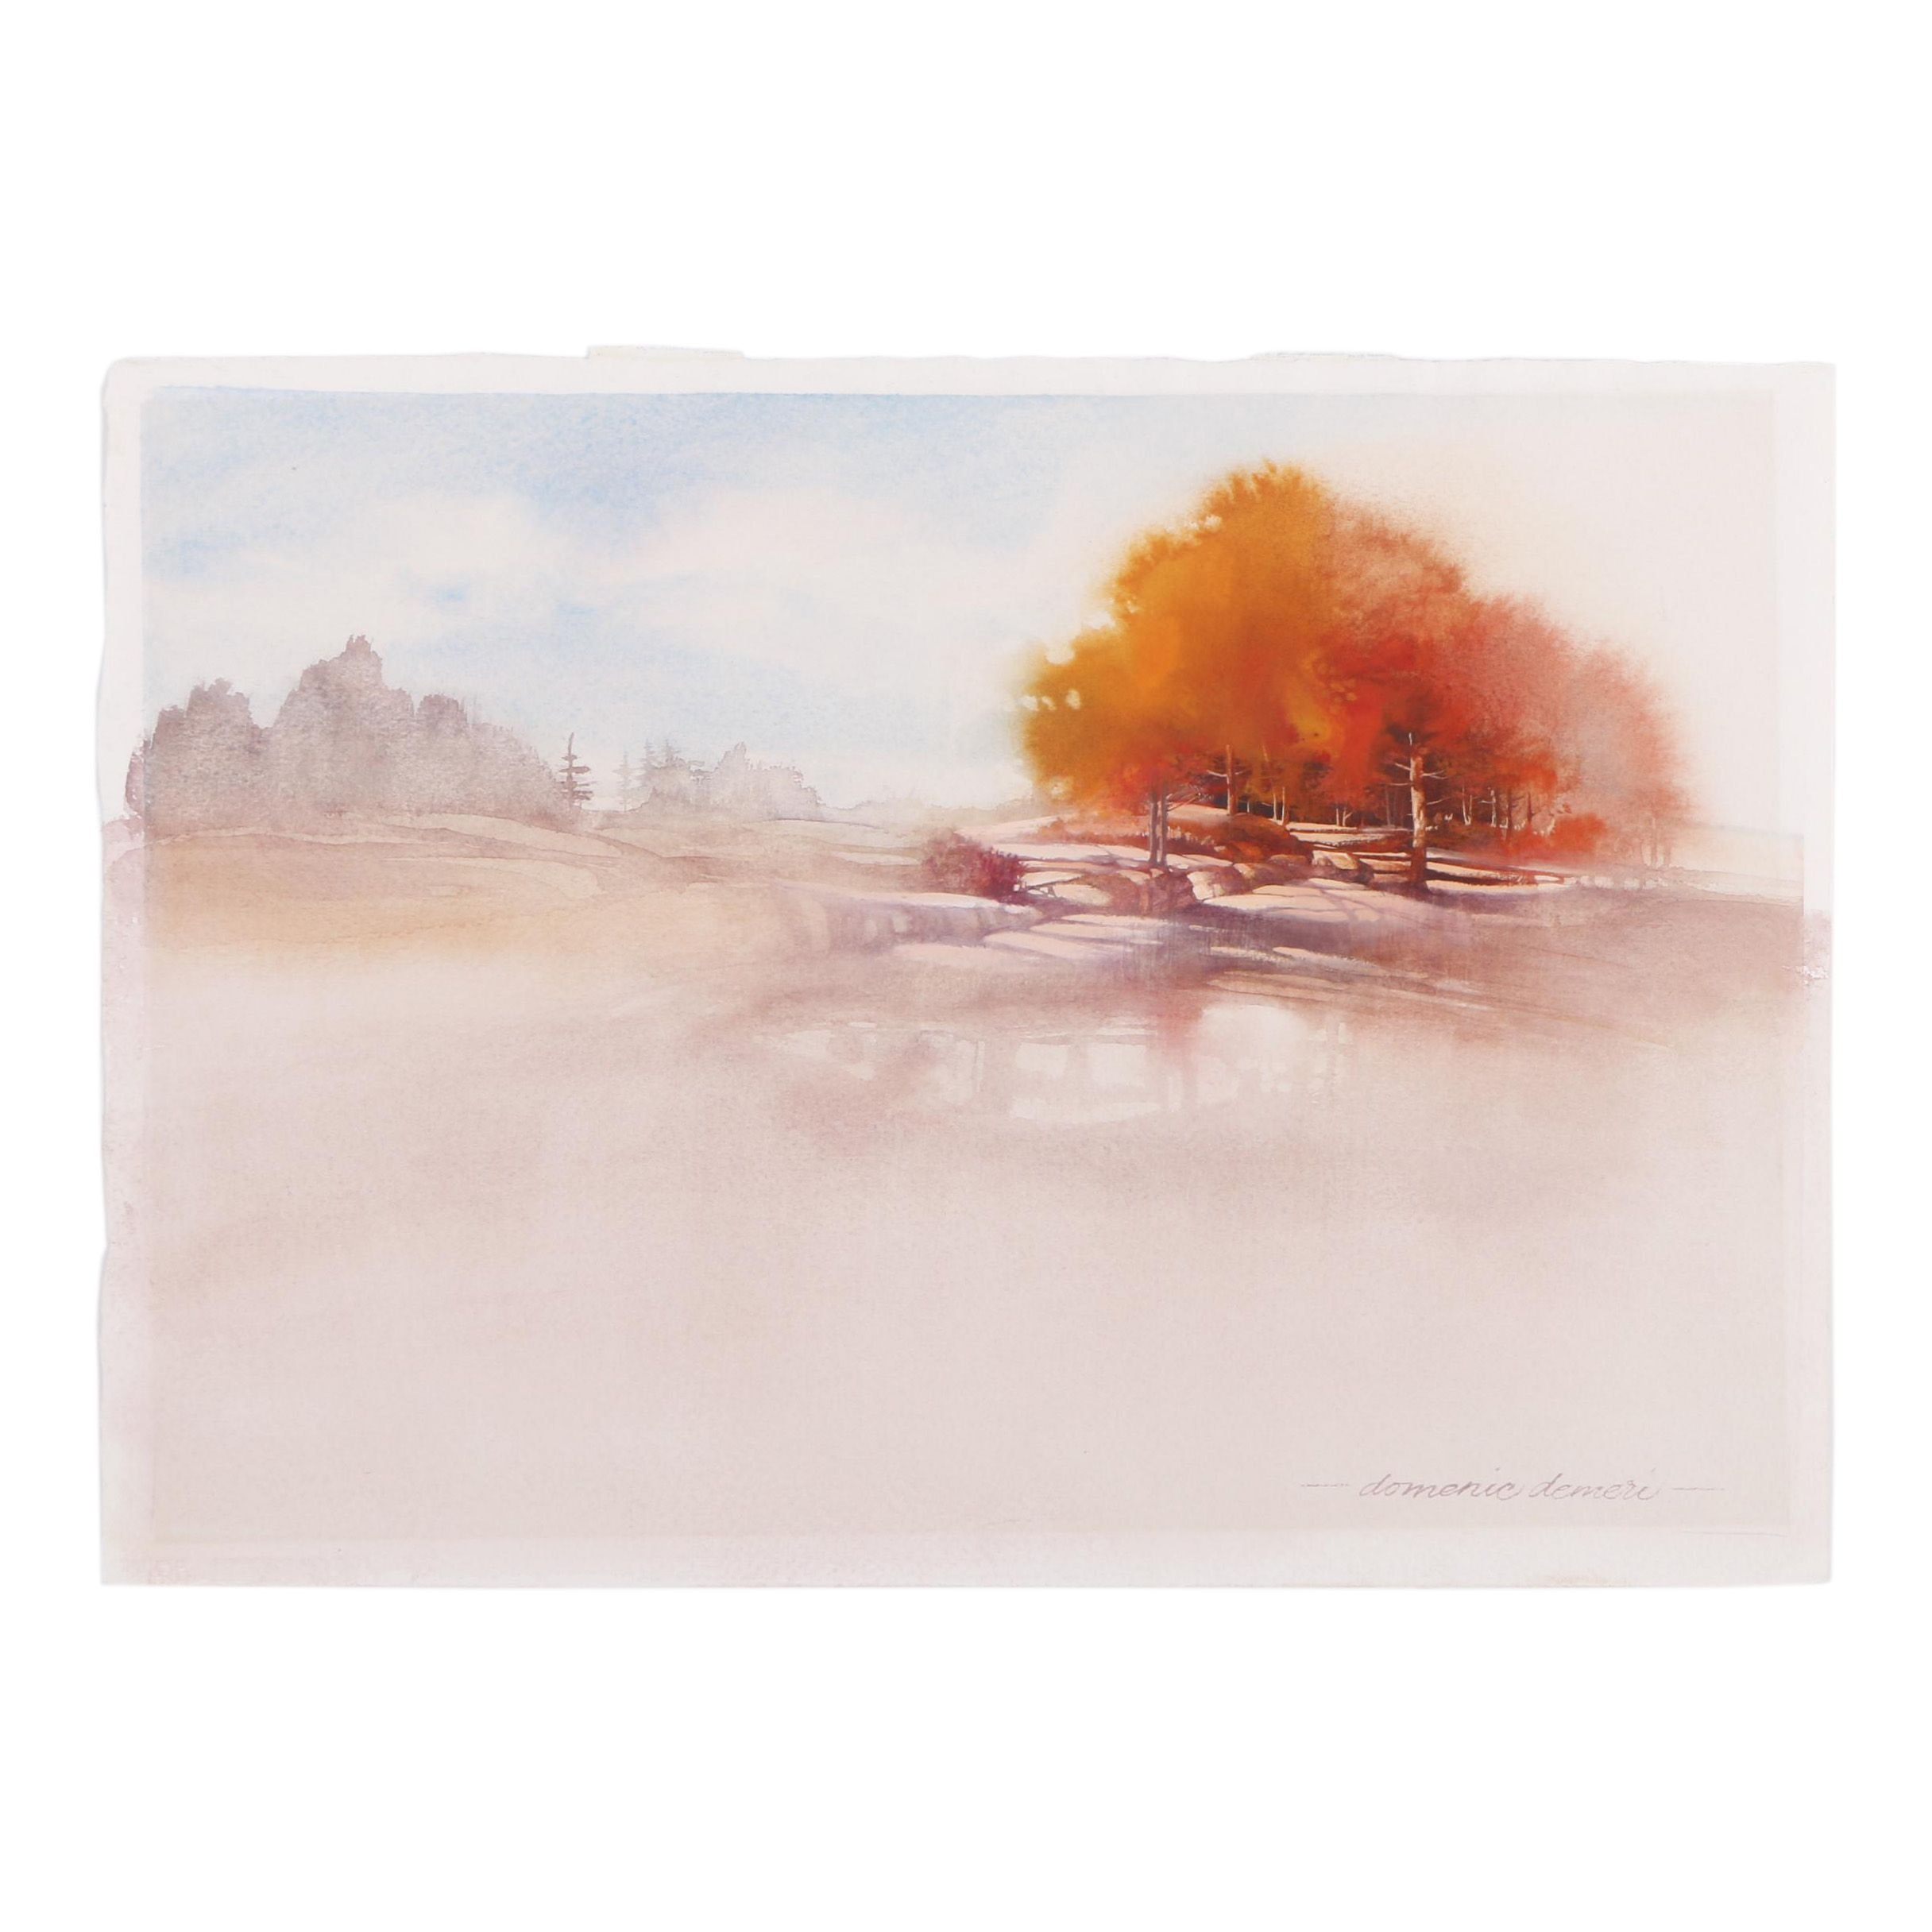 Domenic Demeri Watercolor Painting of a Vibrant Landscape